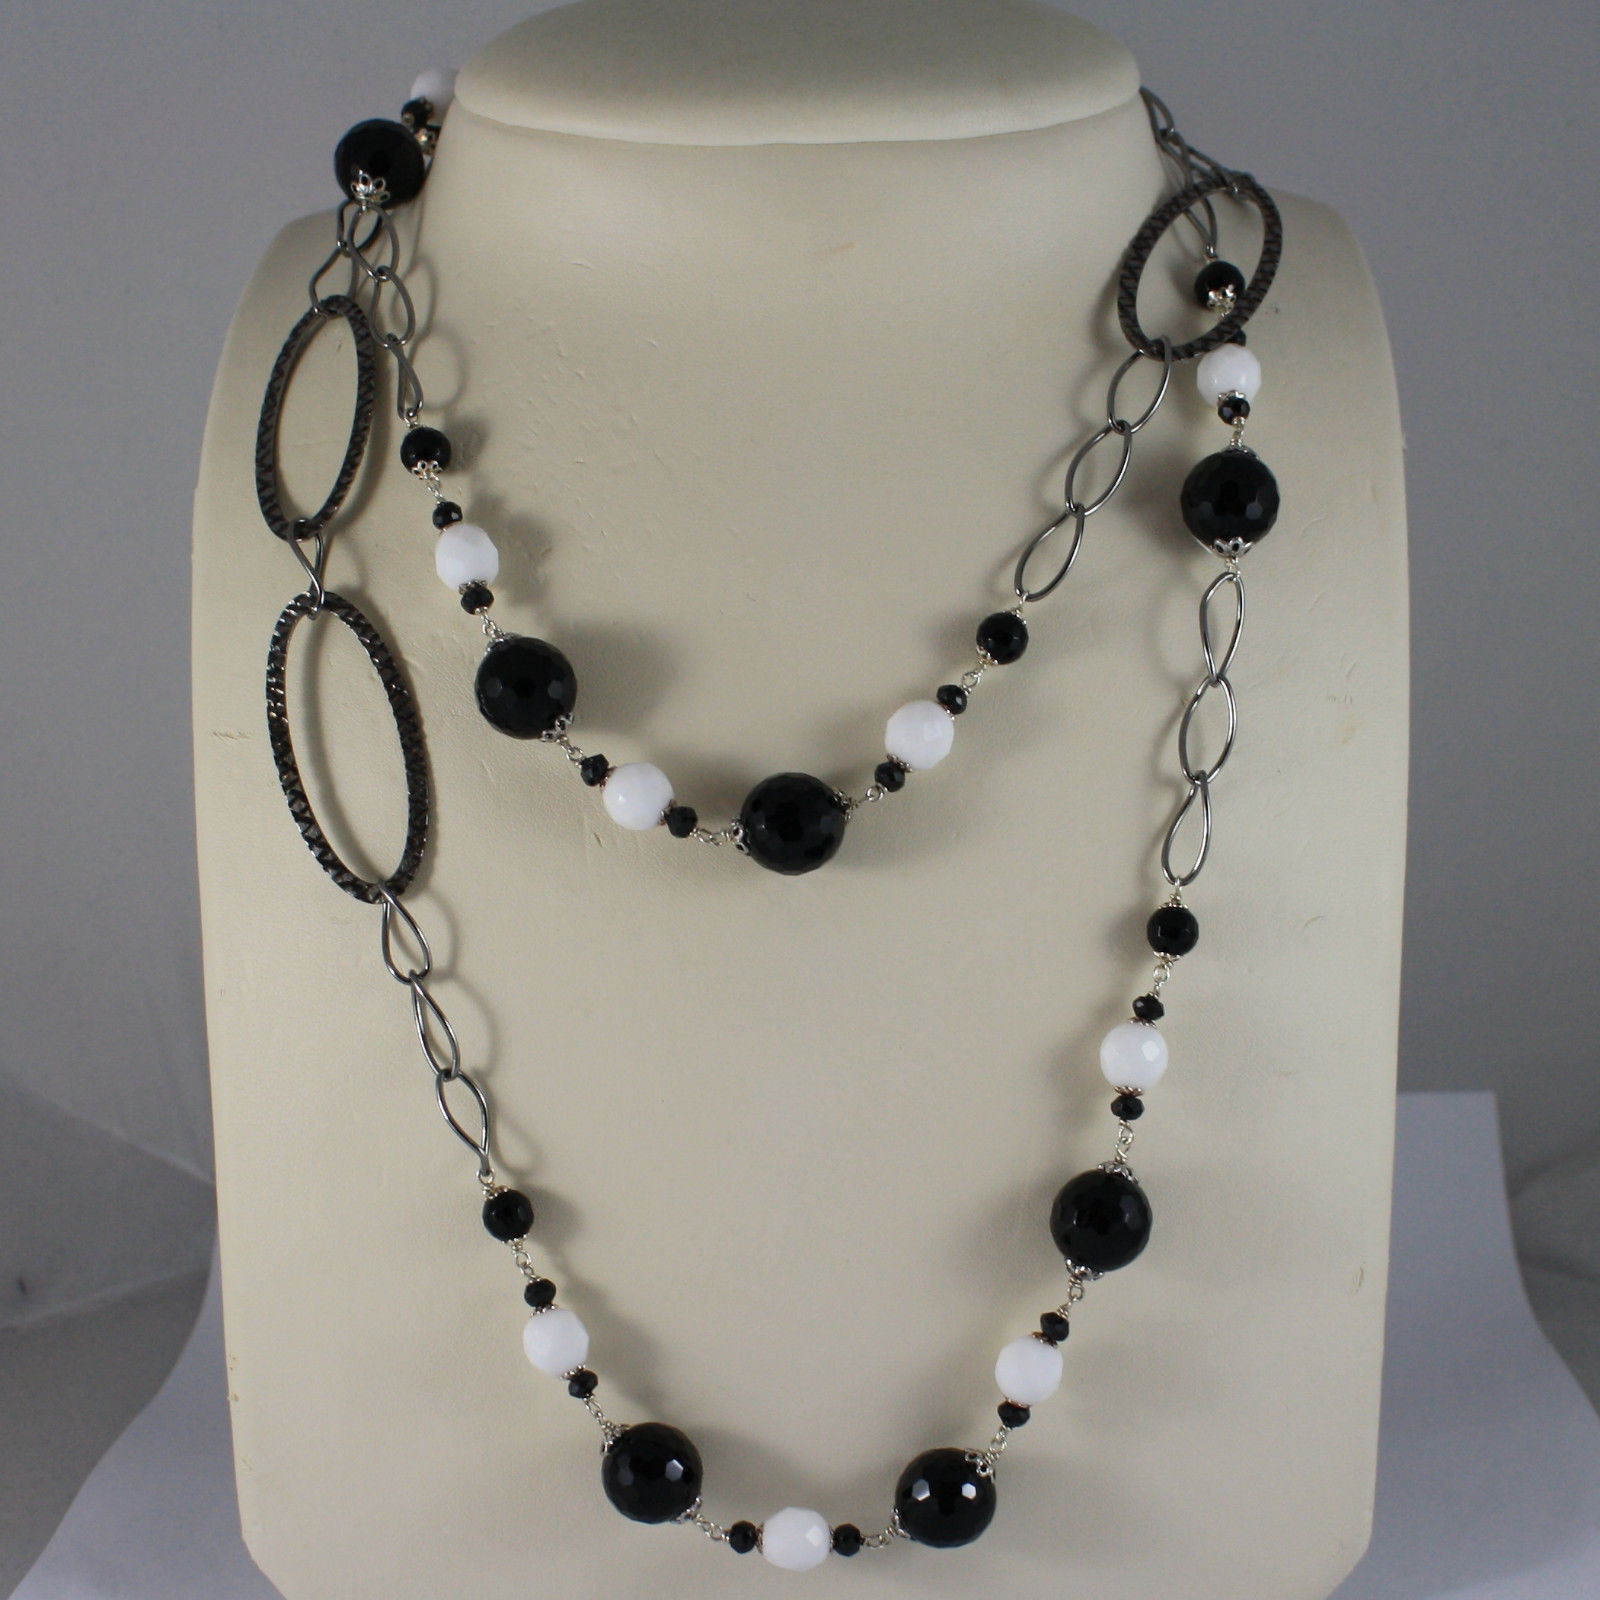 .925 SILVER BURNISHED RHODIUM NECKLACE WITH BLACK ONYX AND WHITE AGATE